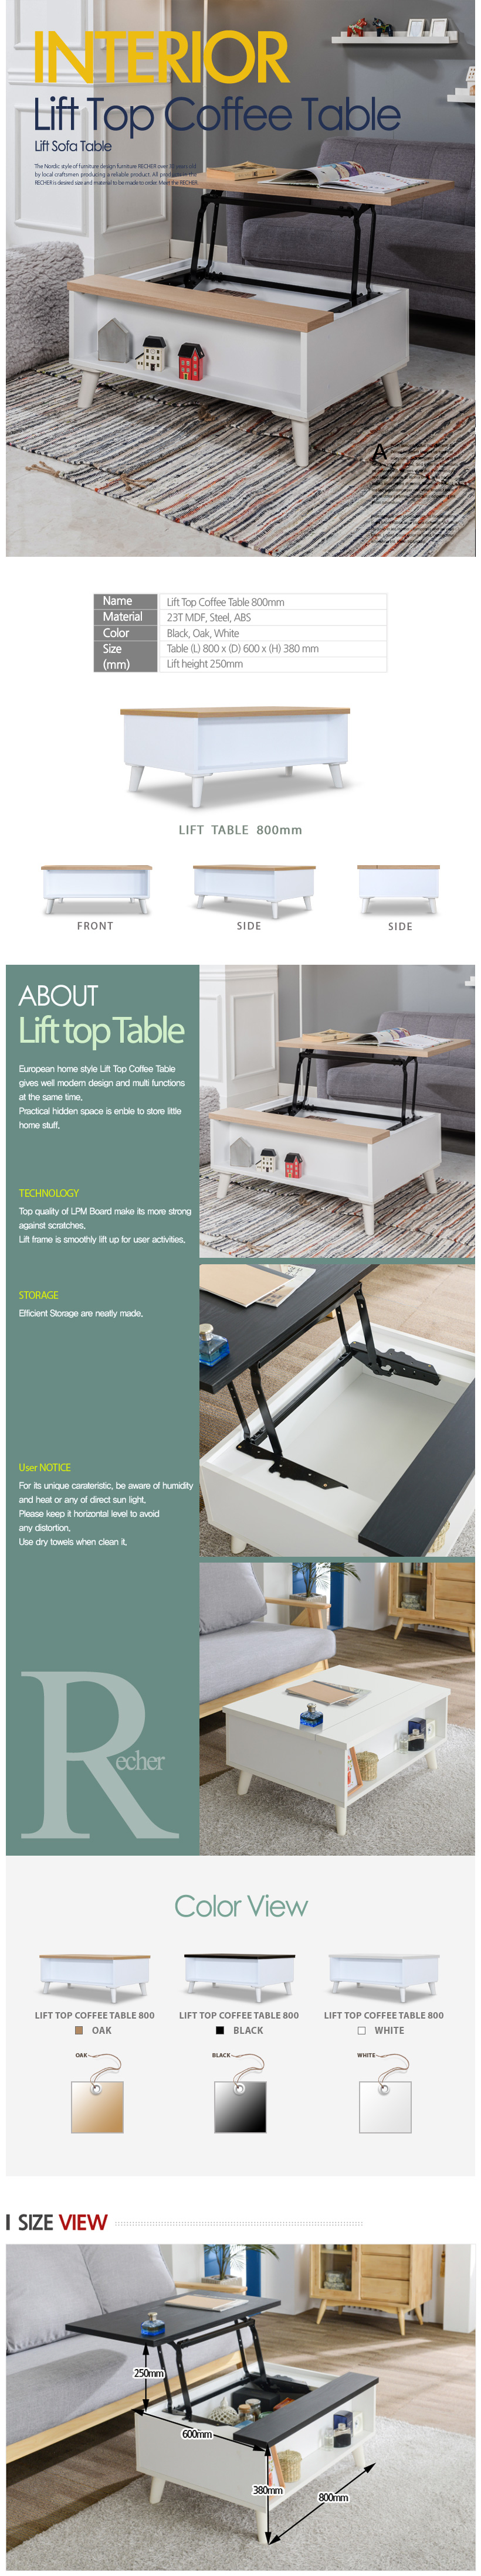 foldable portable chair singapore folding directors with side table buy [blmg_sg]new arrival! lift top coffee table?800cm / 1200cm?lift table?lift ...